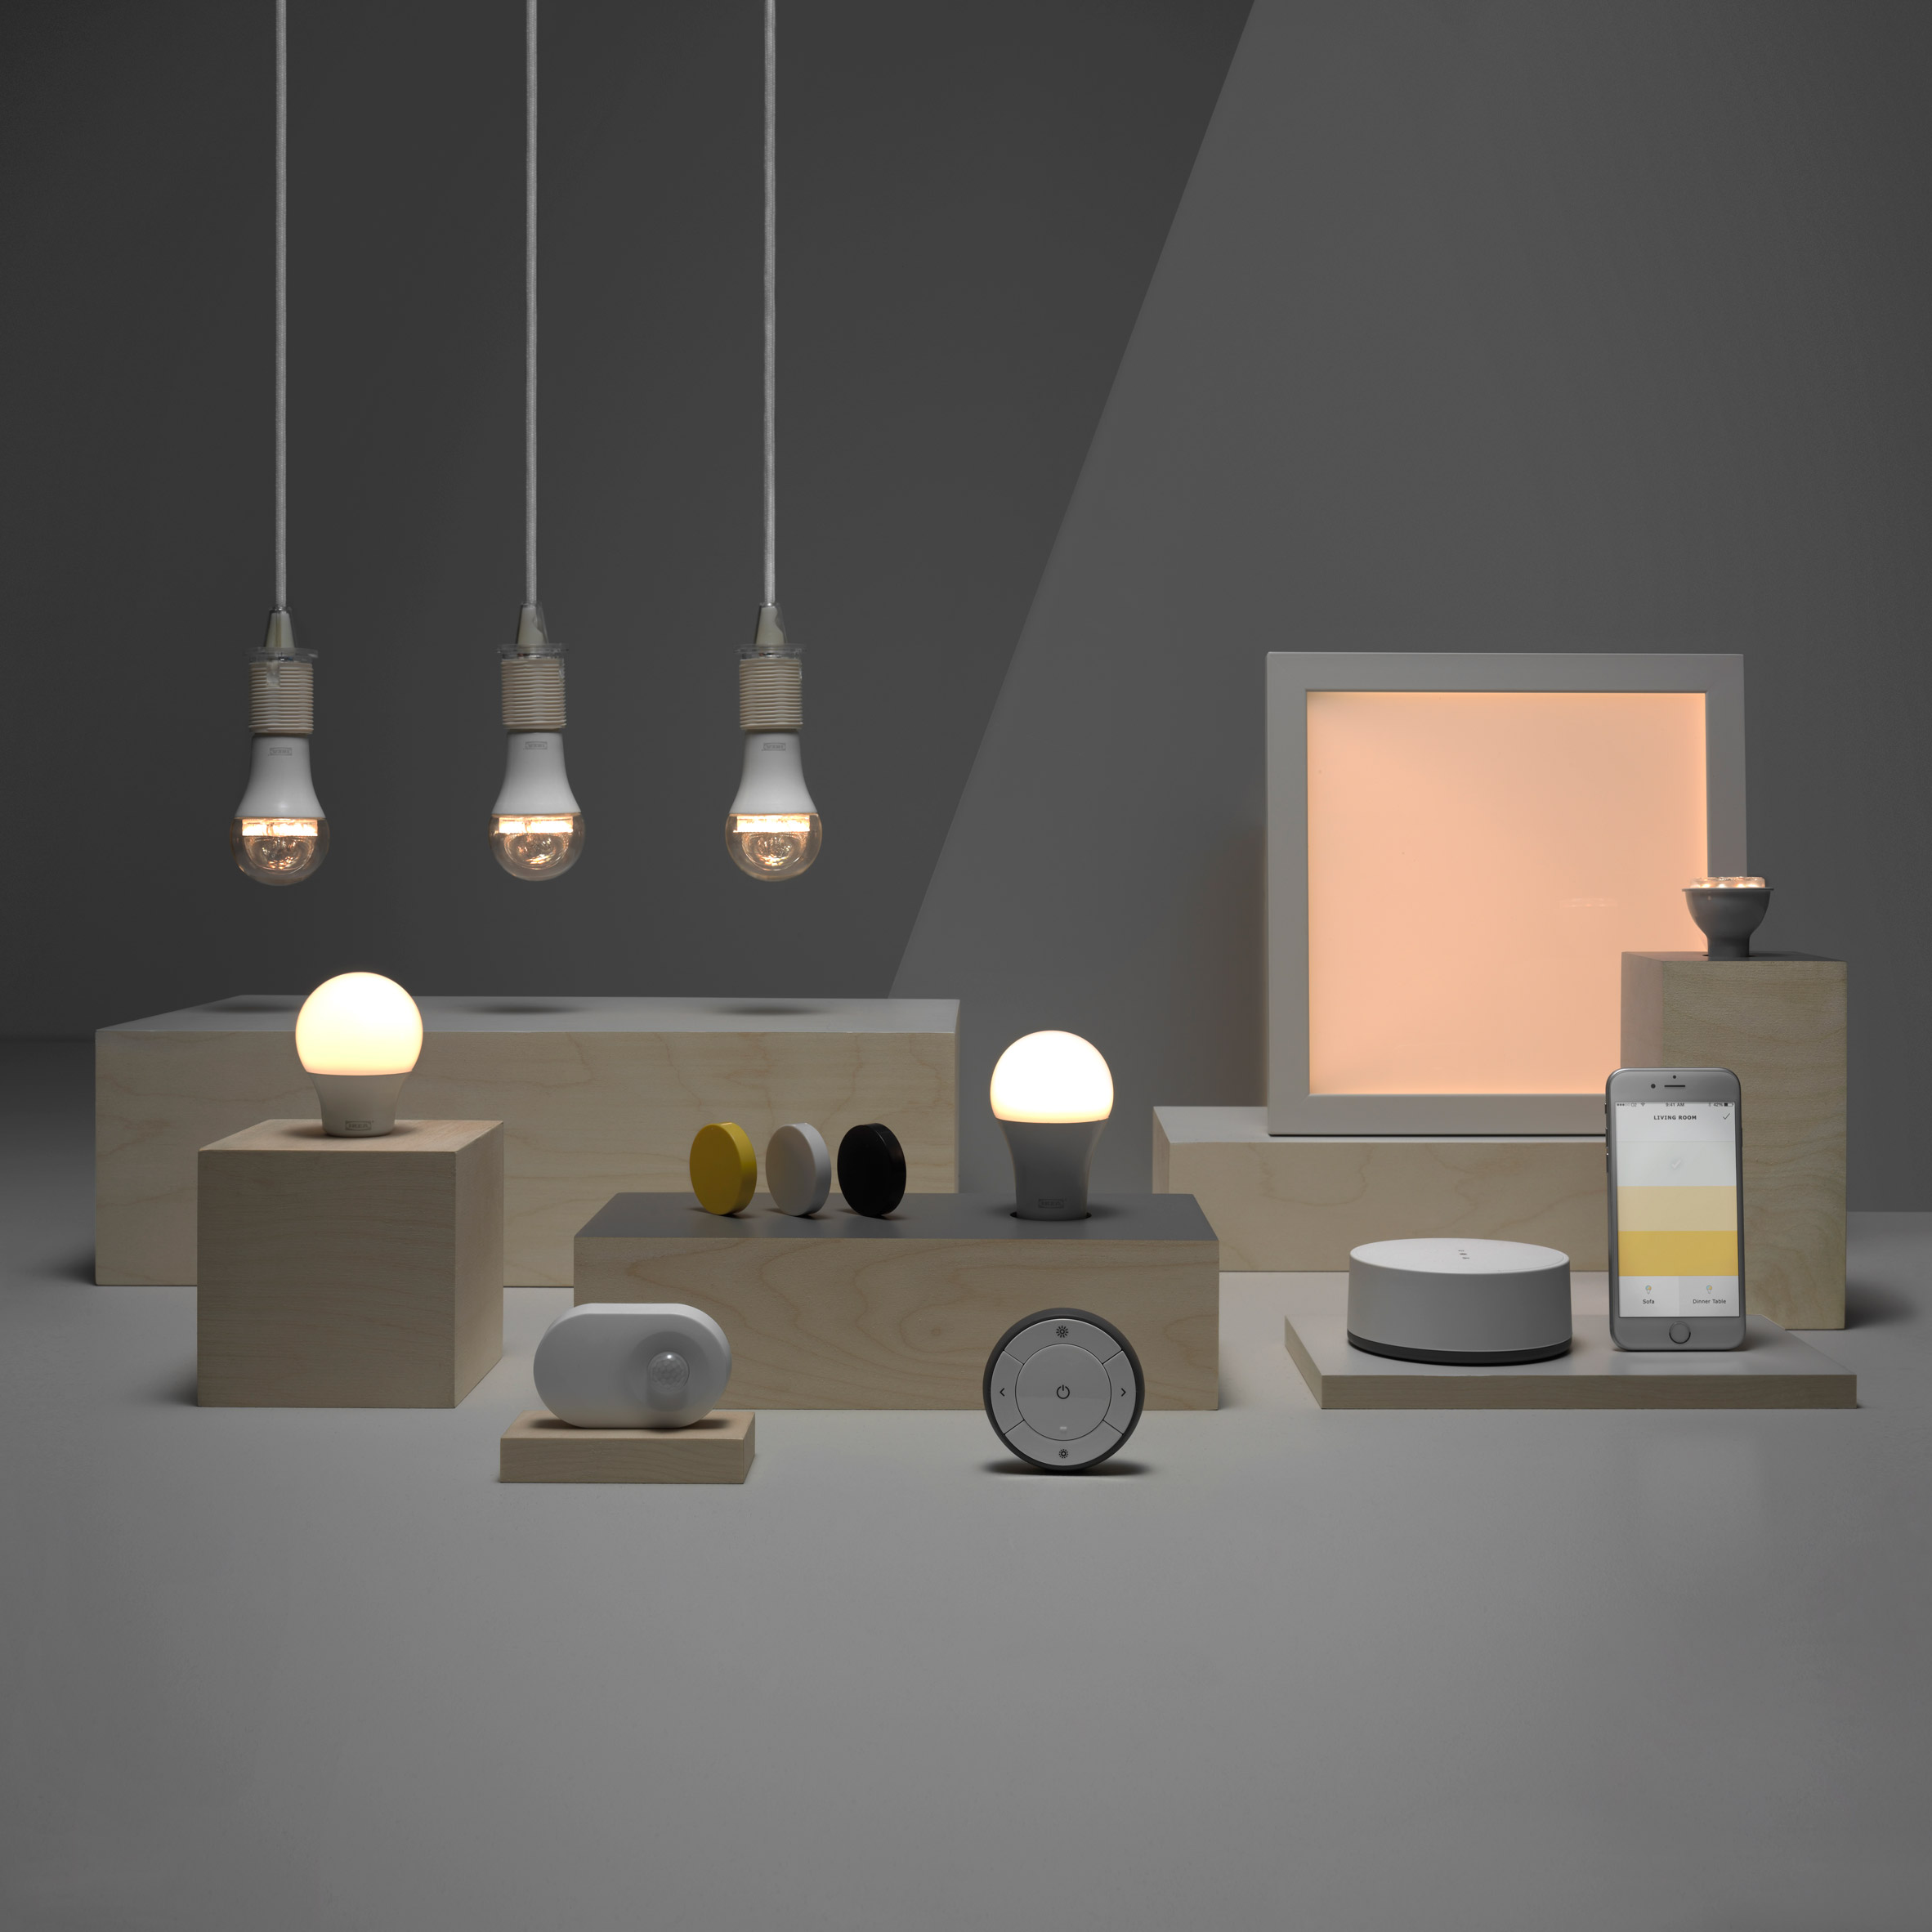 ikea-smart-lights-design-lighting-lamps_dezeen_2364_col_3